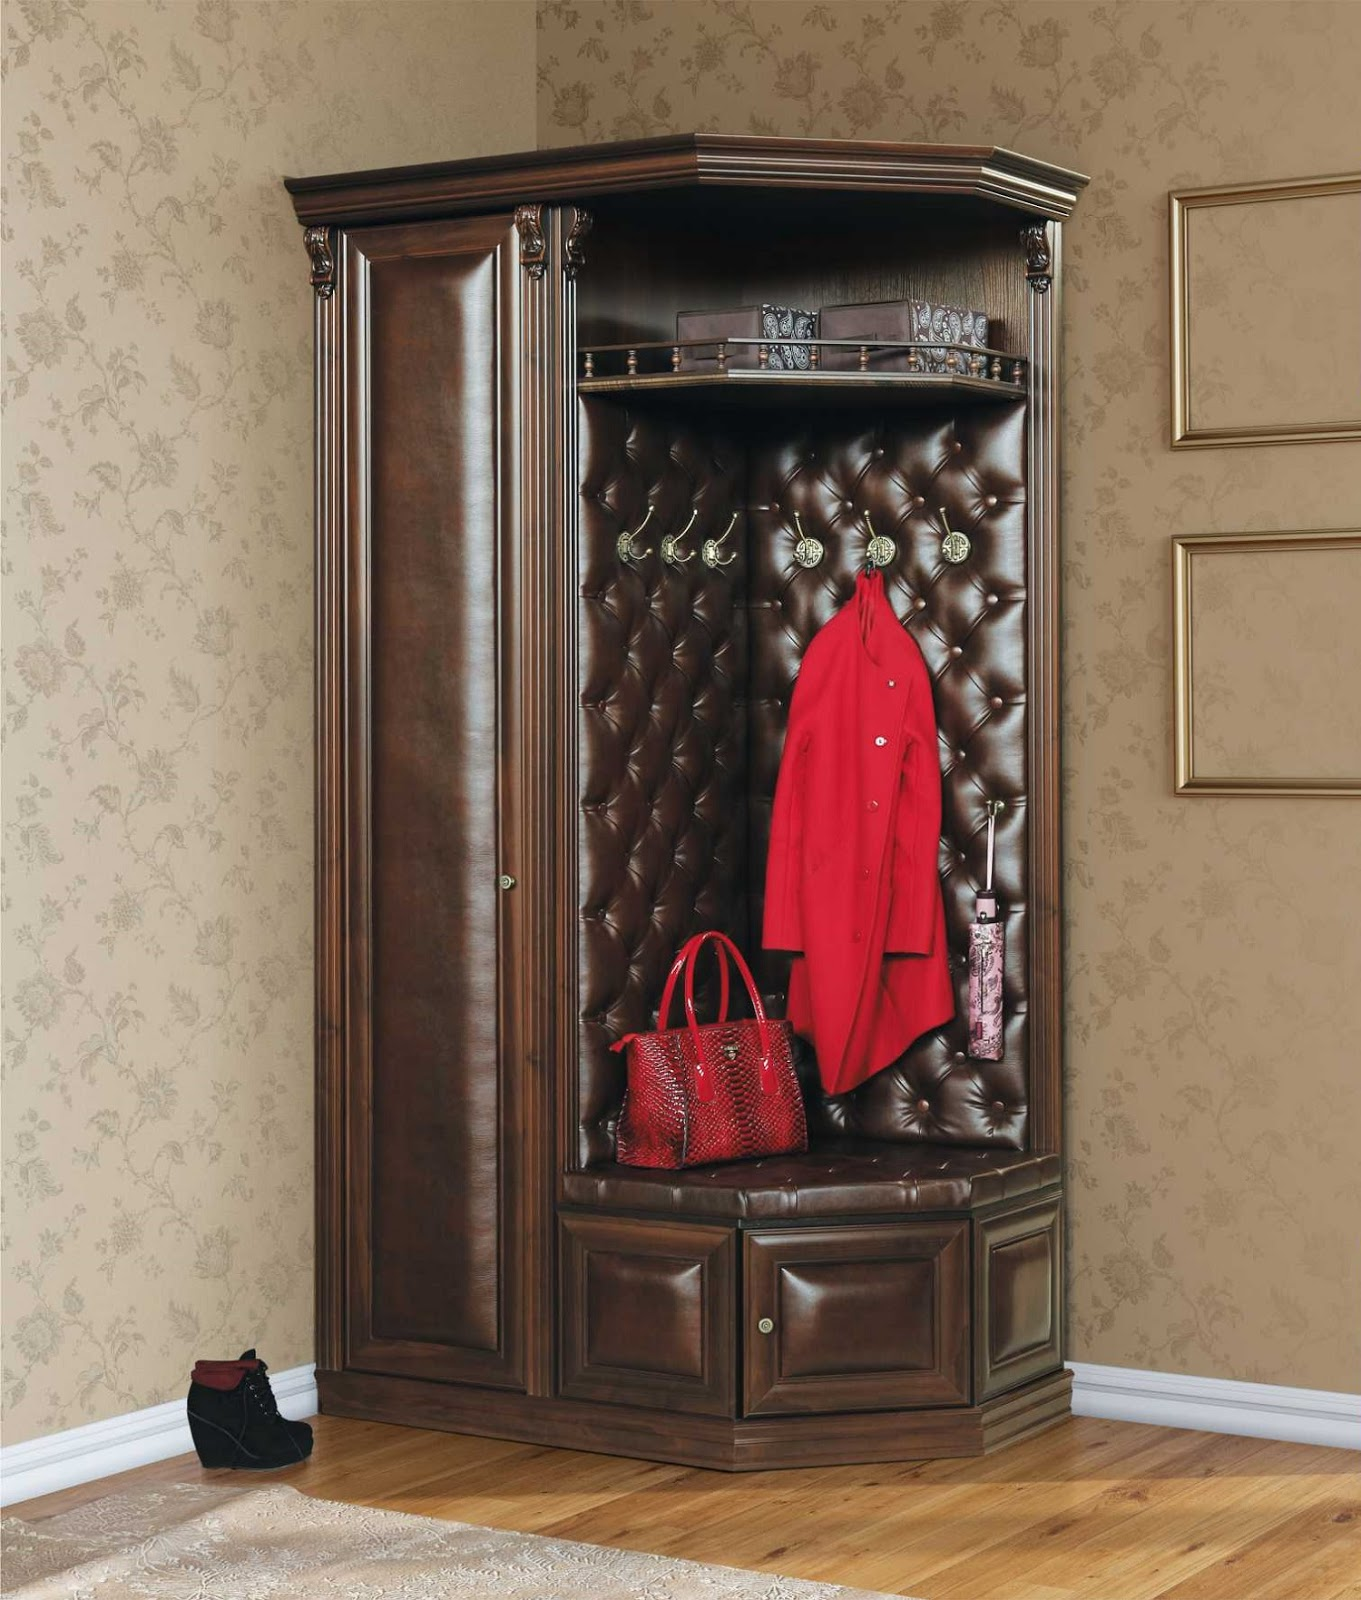 Creative%2BSmall%2BCorner%2BWall%2BCabinets%2B%25285%2529 35 Inventive Small Nook Wall Cupboards Interior